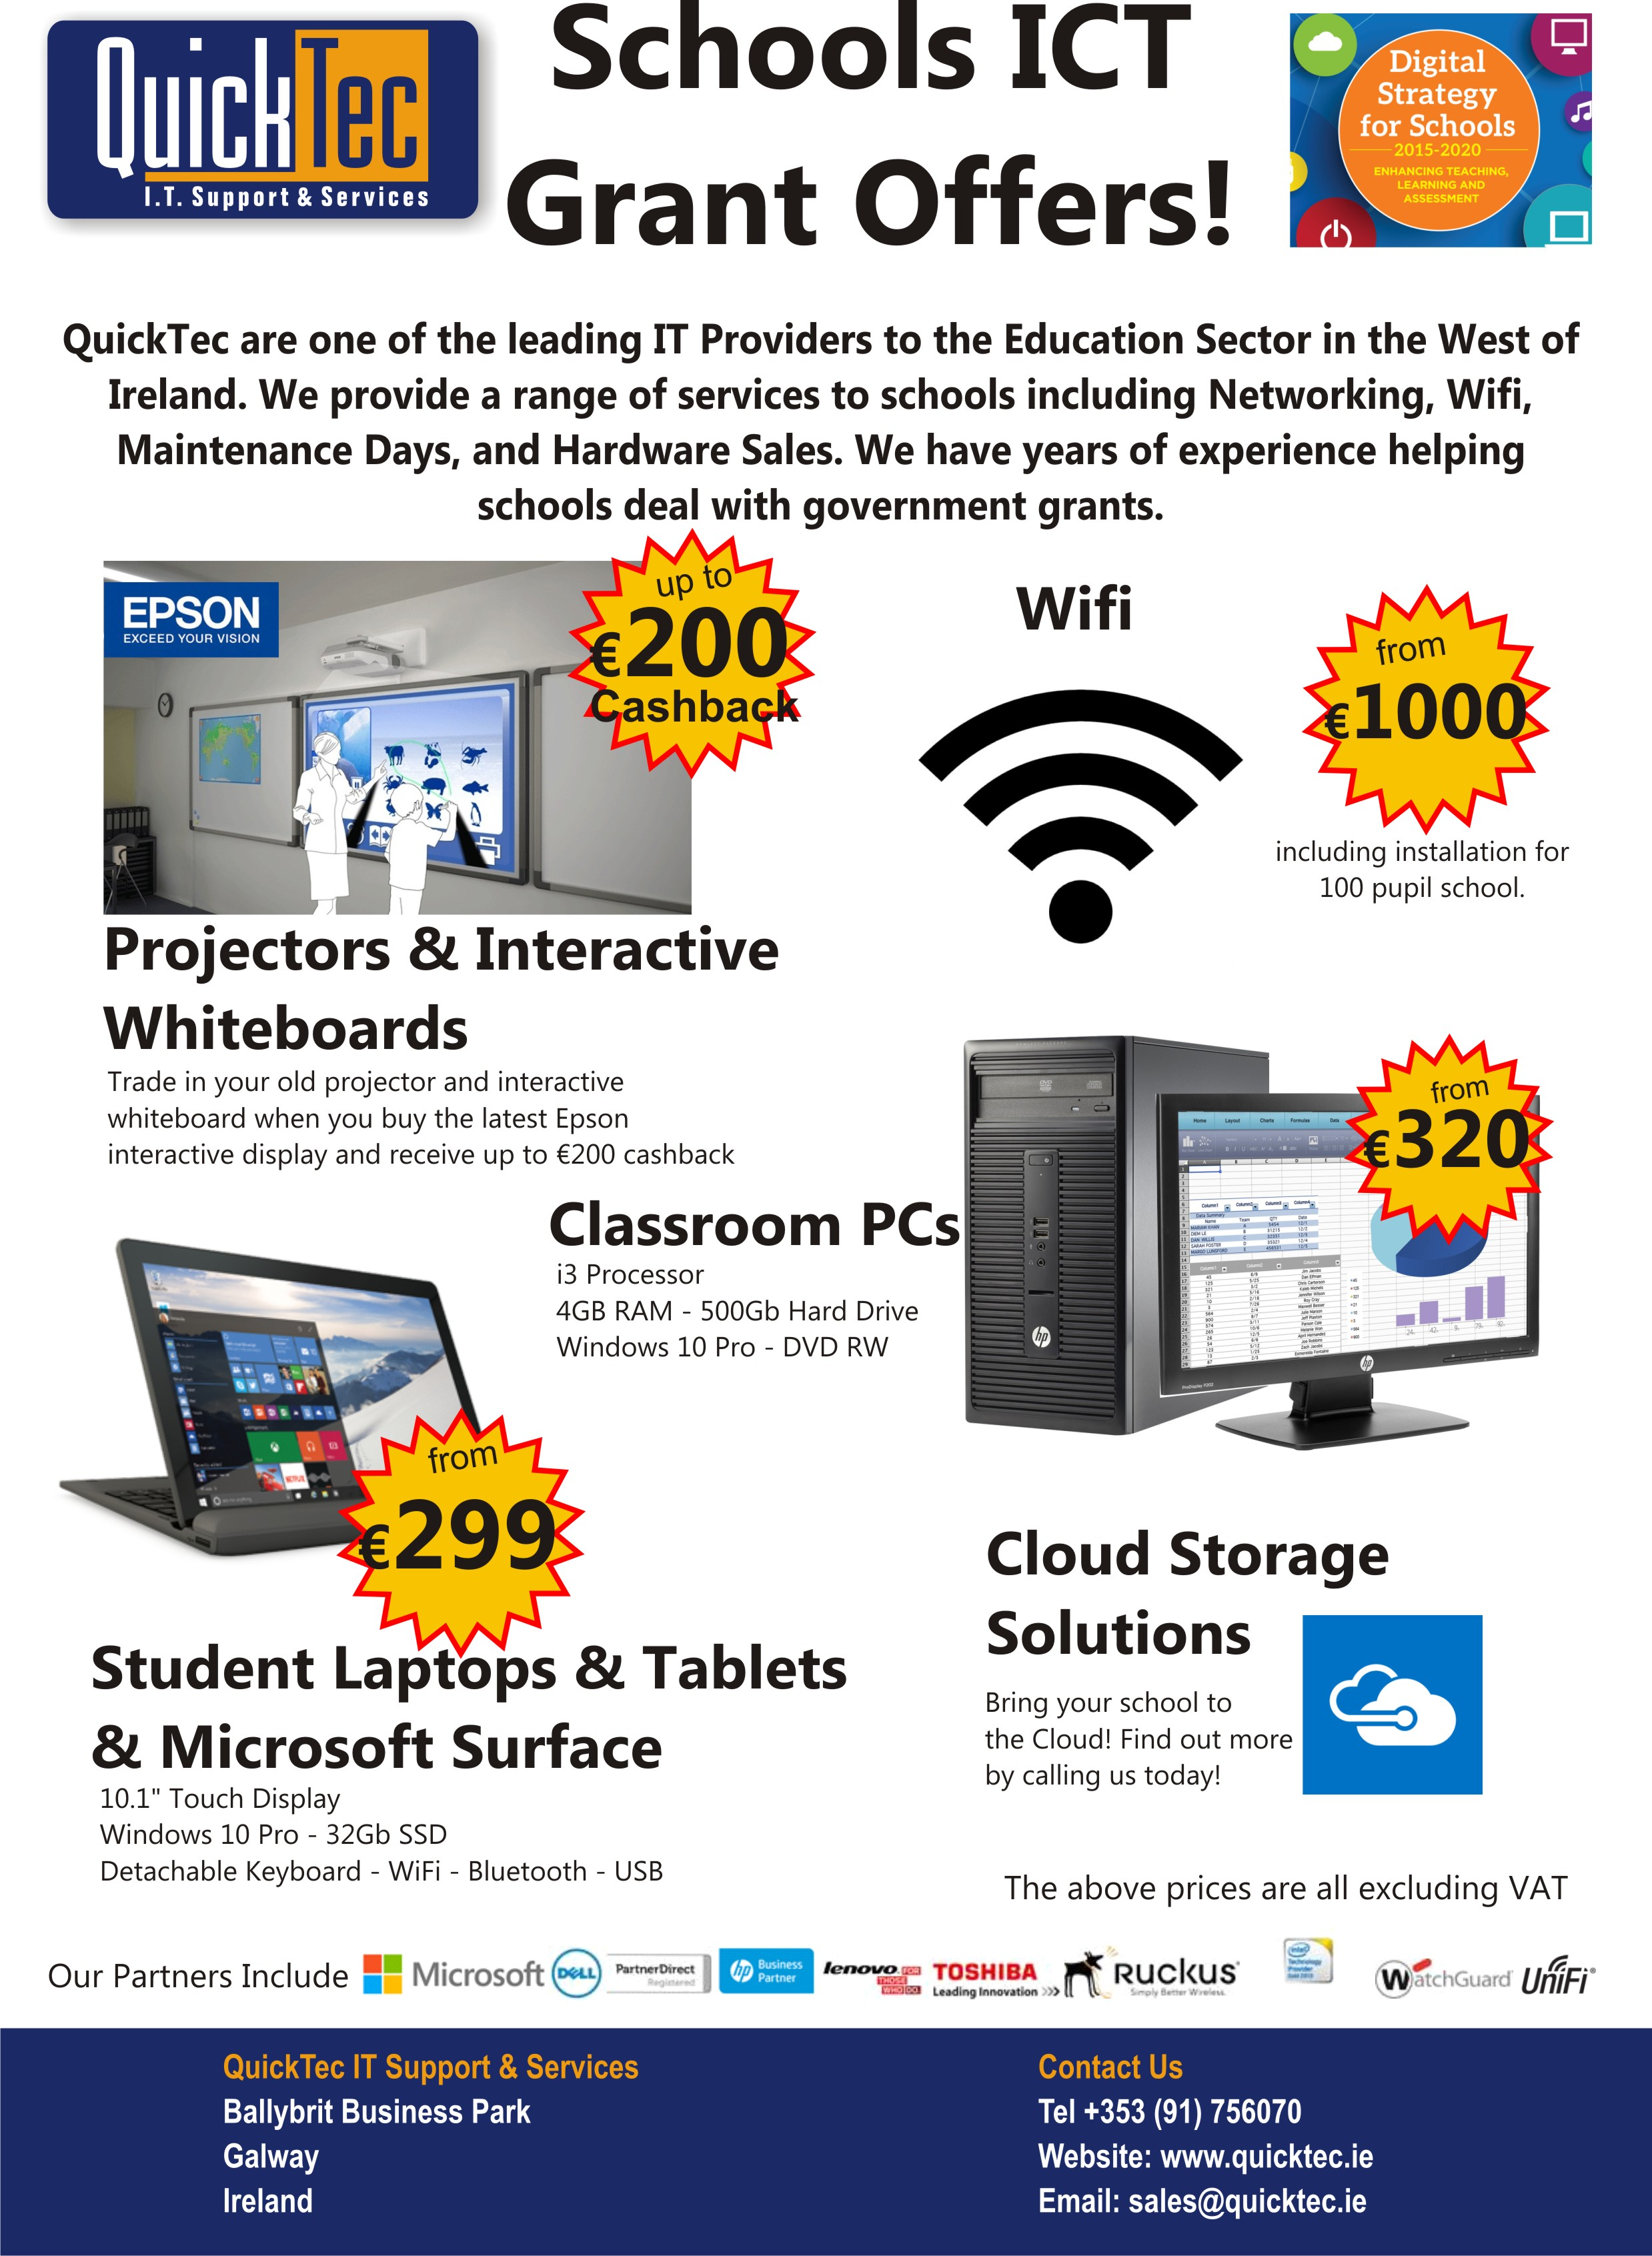 Quicktec- Reliable IT Services and Support